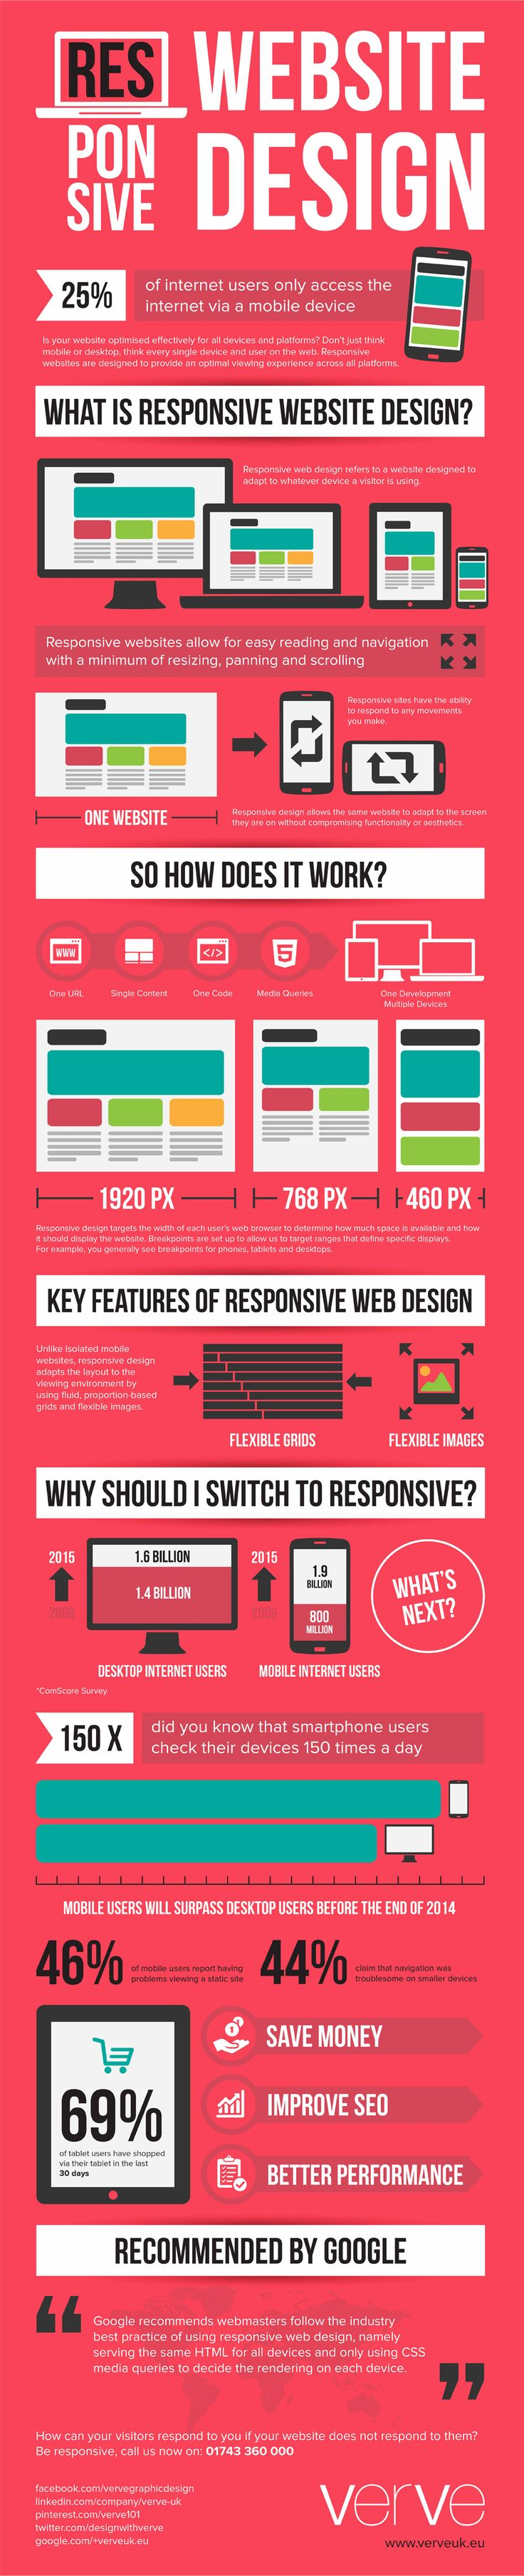 Responsive Web Design Infographic. What is it? | How does it work? | Key Features? | Why Switch?